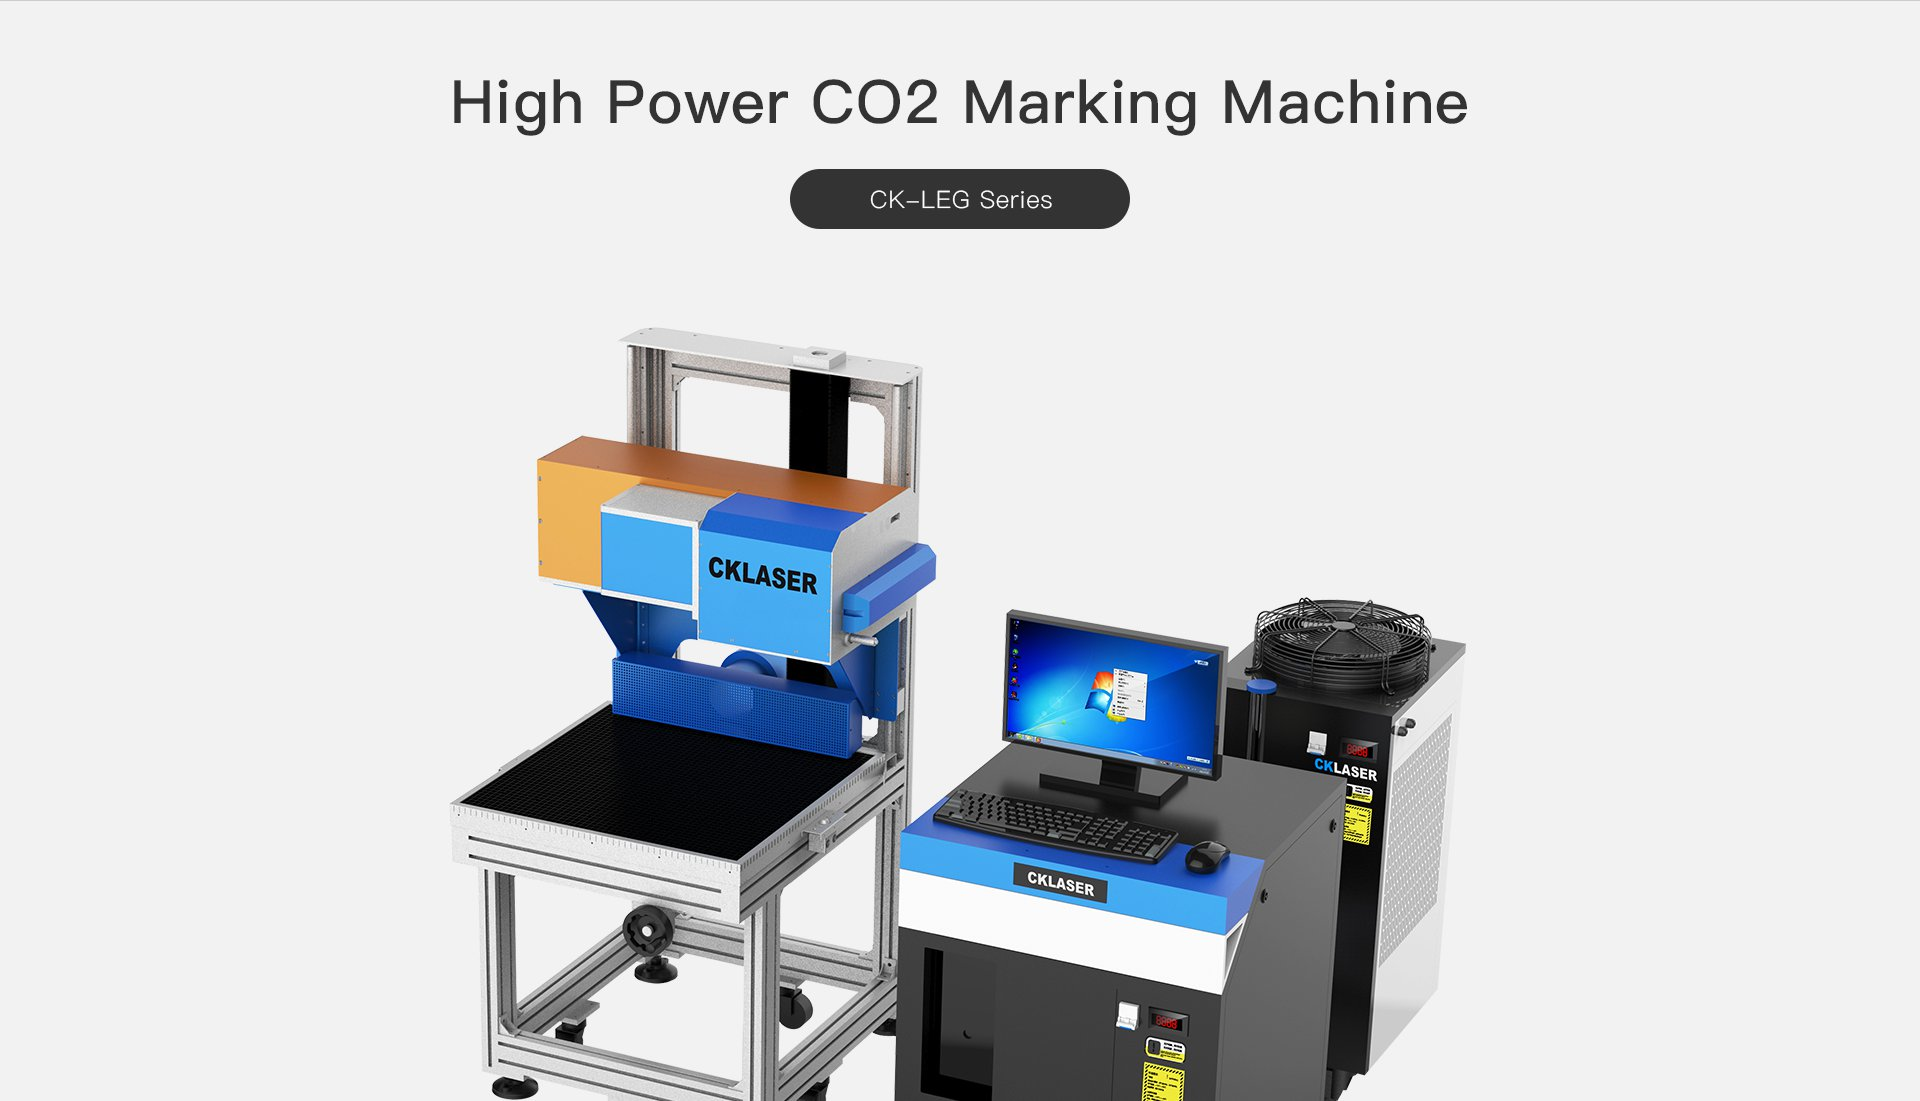 Taste Laser-co2 laser engraving and cutting machine